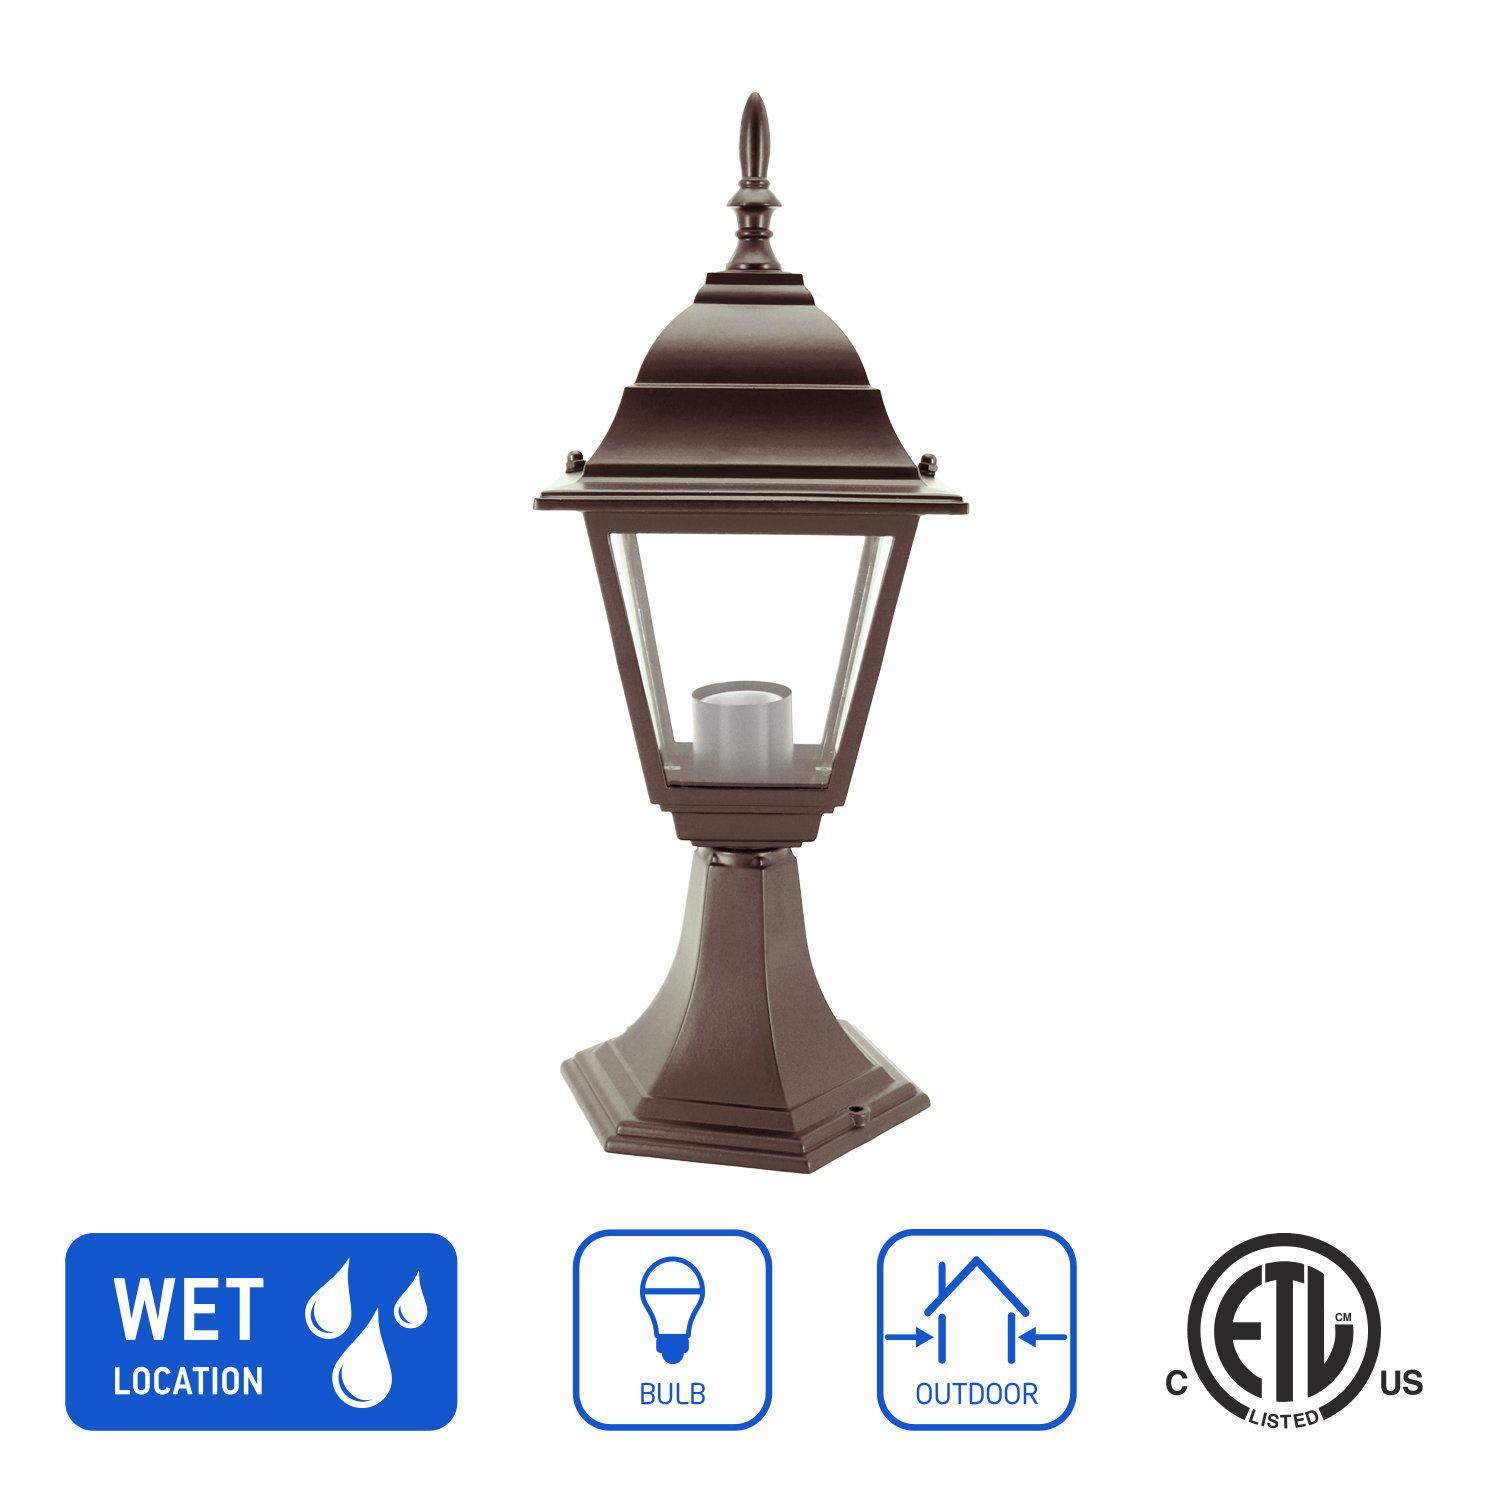 IN HOME 1-Light Outdoor Garden Post Lantern L02 Lighting Fixture, Traditional Post Lamp Patio with One E26 Base, Water-proof, Bronze Cast Aluminum Housing, Clear Glass Panels, ETL Listed